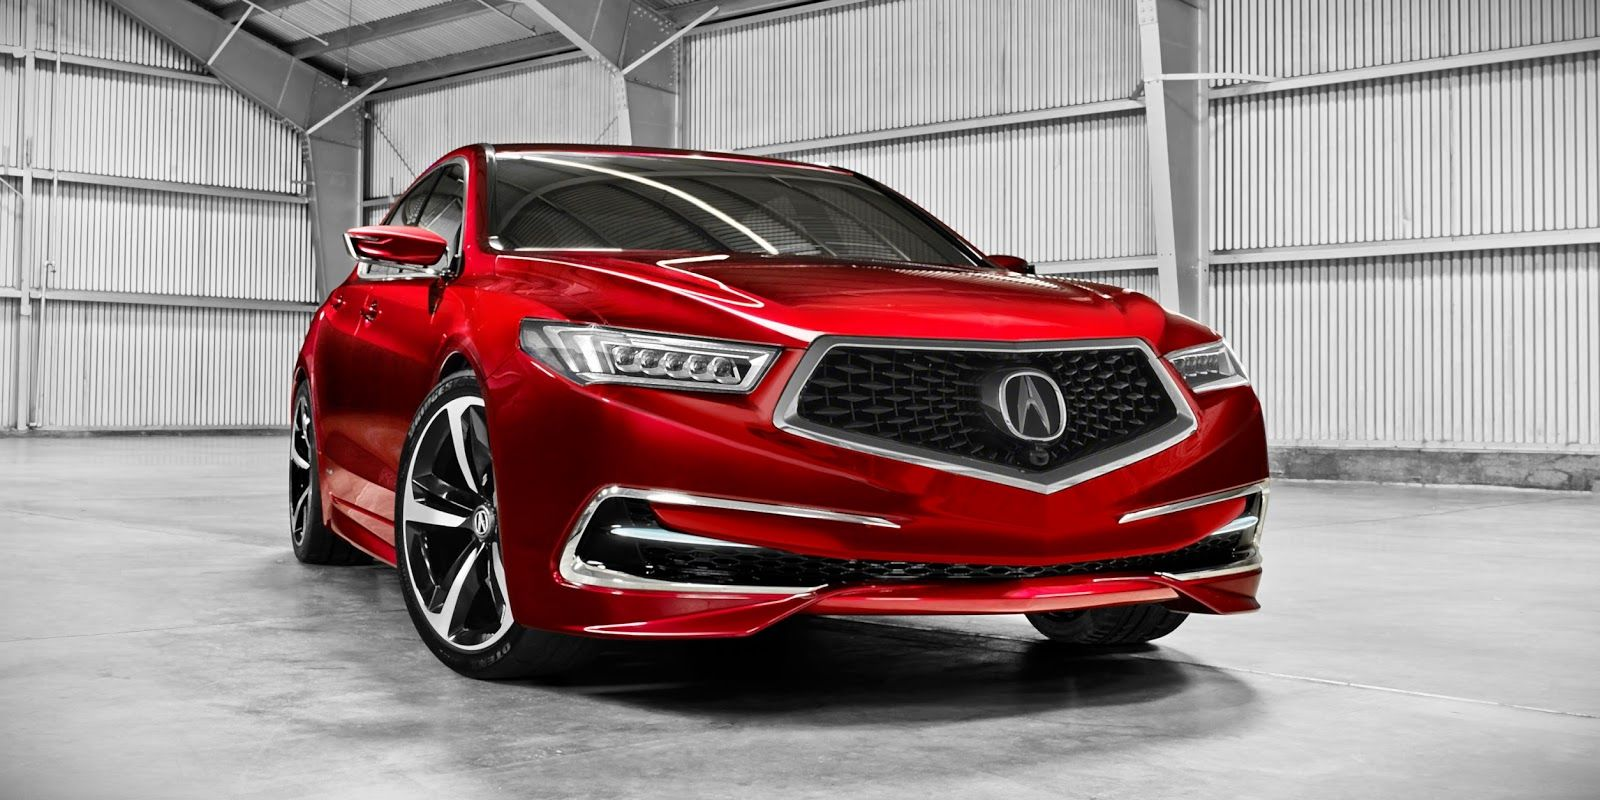 2018 Acura Tlx Redesign Interior Exterior Specs Smallcarsreviews